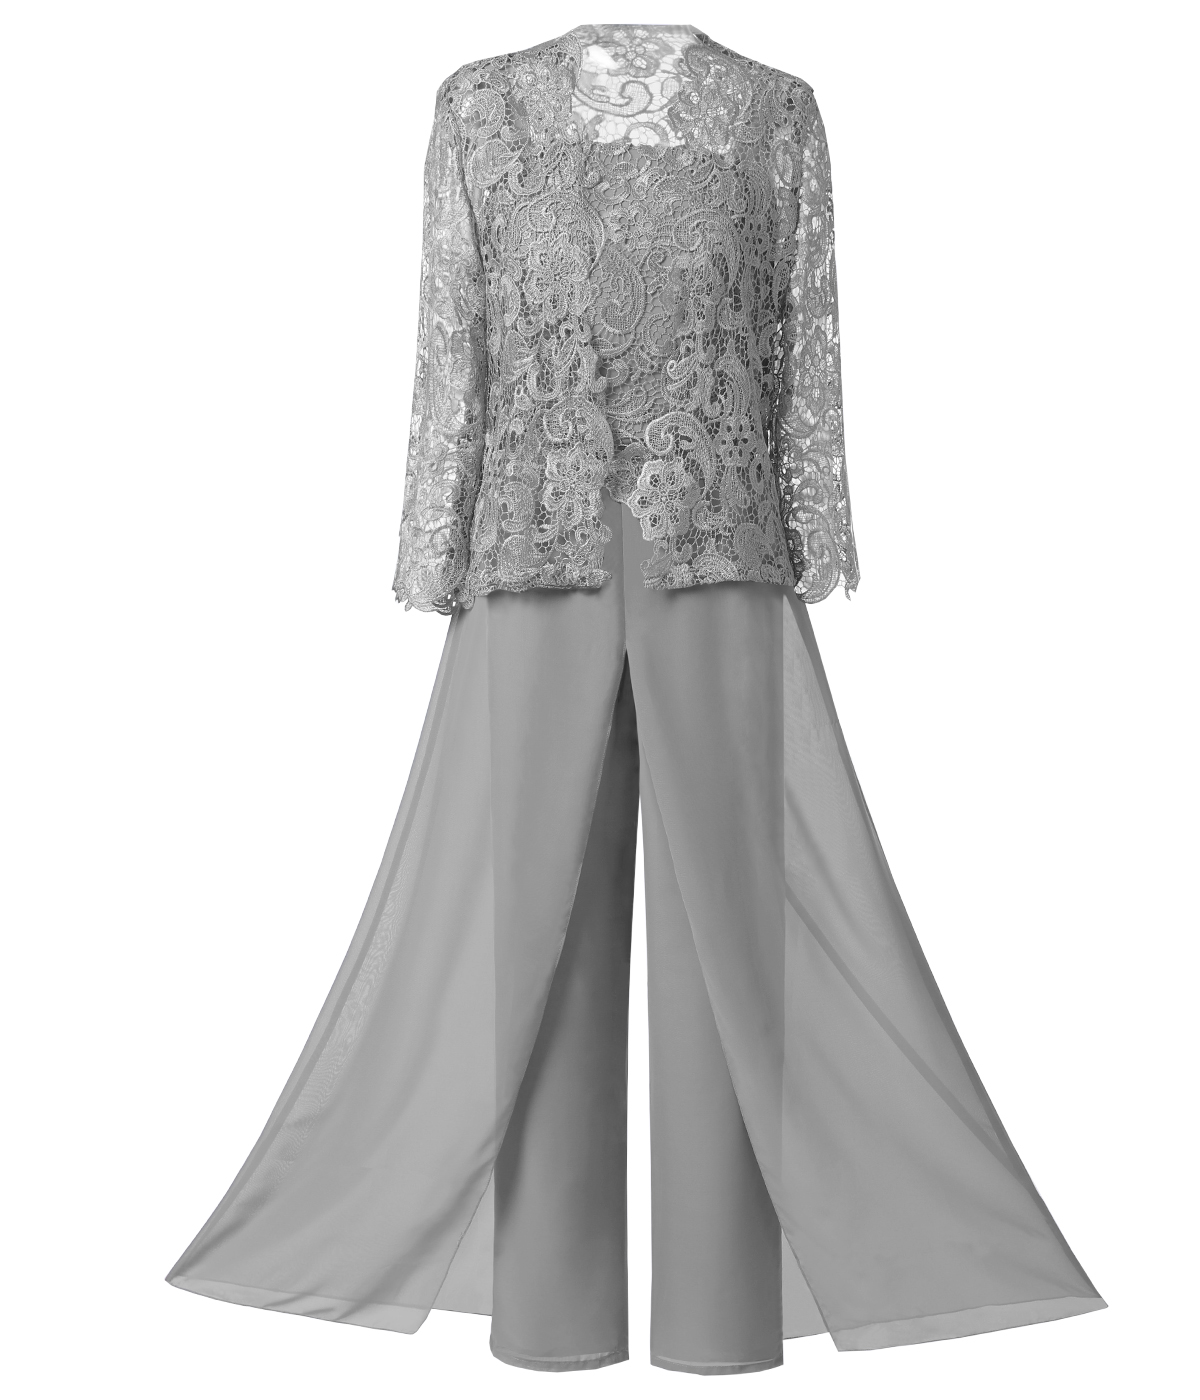 Solovedress 3 Three Pieces Mother Of The Bride Dress Pants Suit With Jacket Outfit Formal Evening Lace Wedding Groom SL-M06